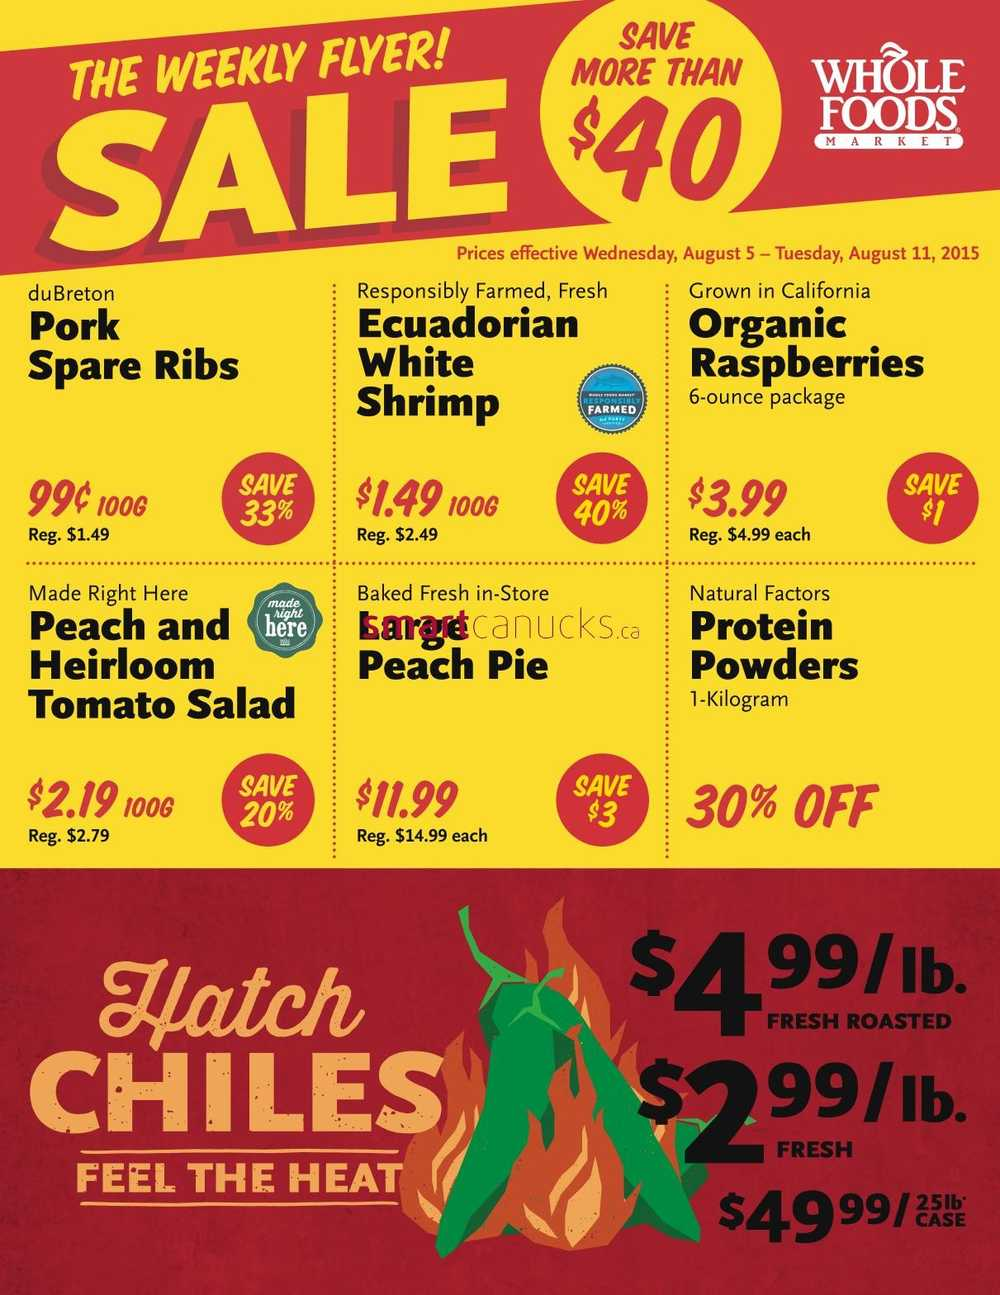 Whole Foods Weekly Flyer